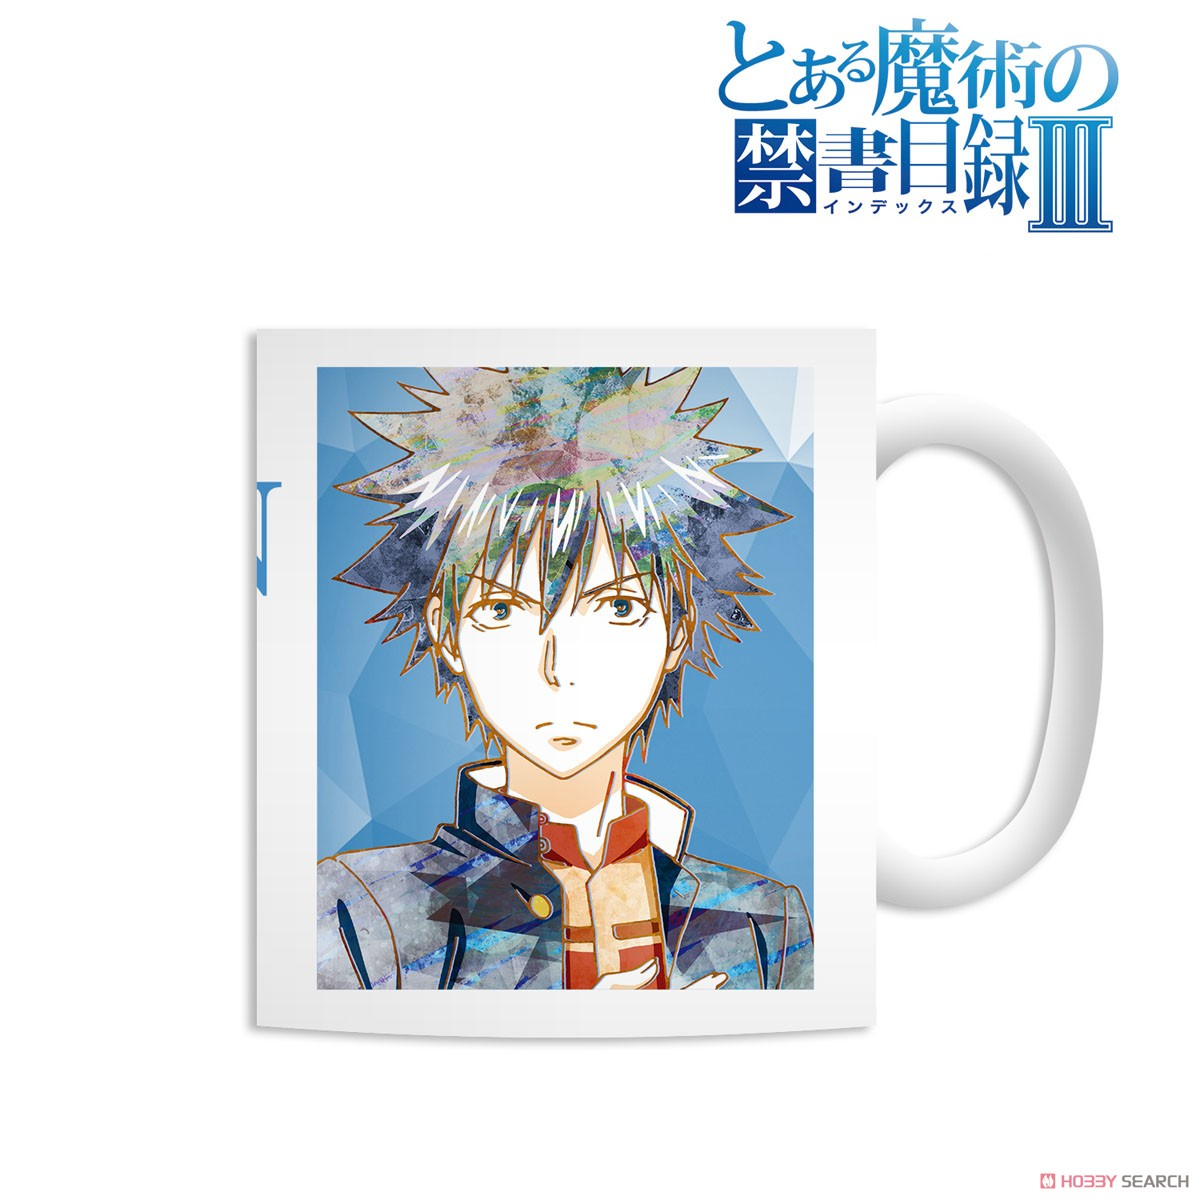 A Certain Magical Index III Toma Kamijo Mug Cup (Anime Toy) Item picture1